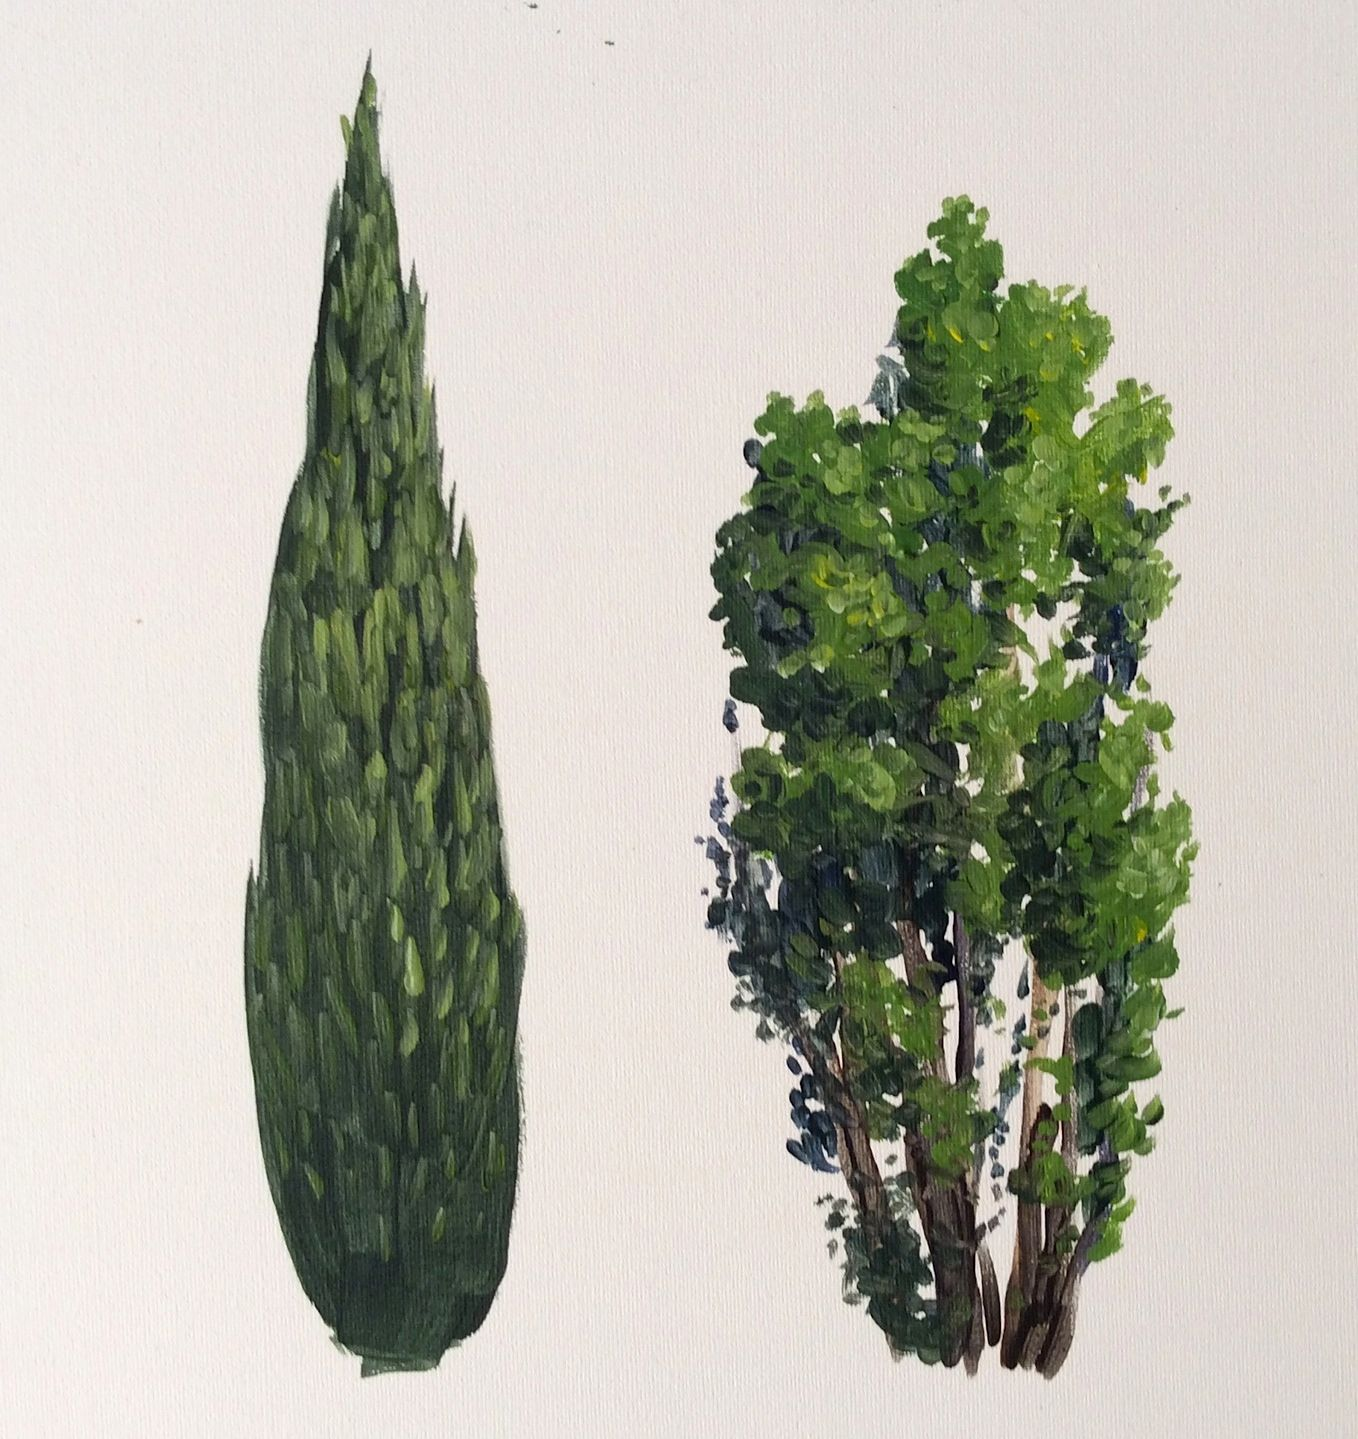 Learn how to paint cypress trees in #acrylics with Jon Cox as part of our #landscapes academy. Coming soon to ArtTutor.